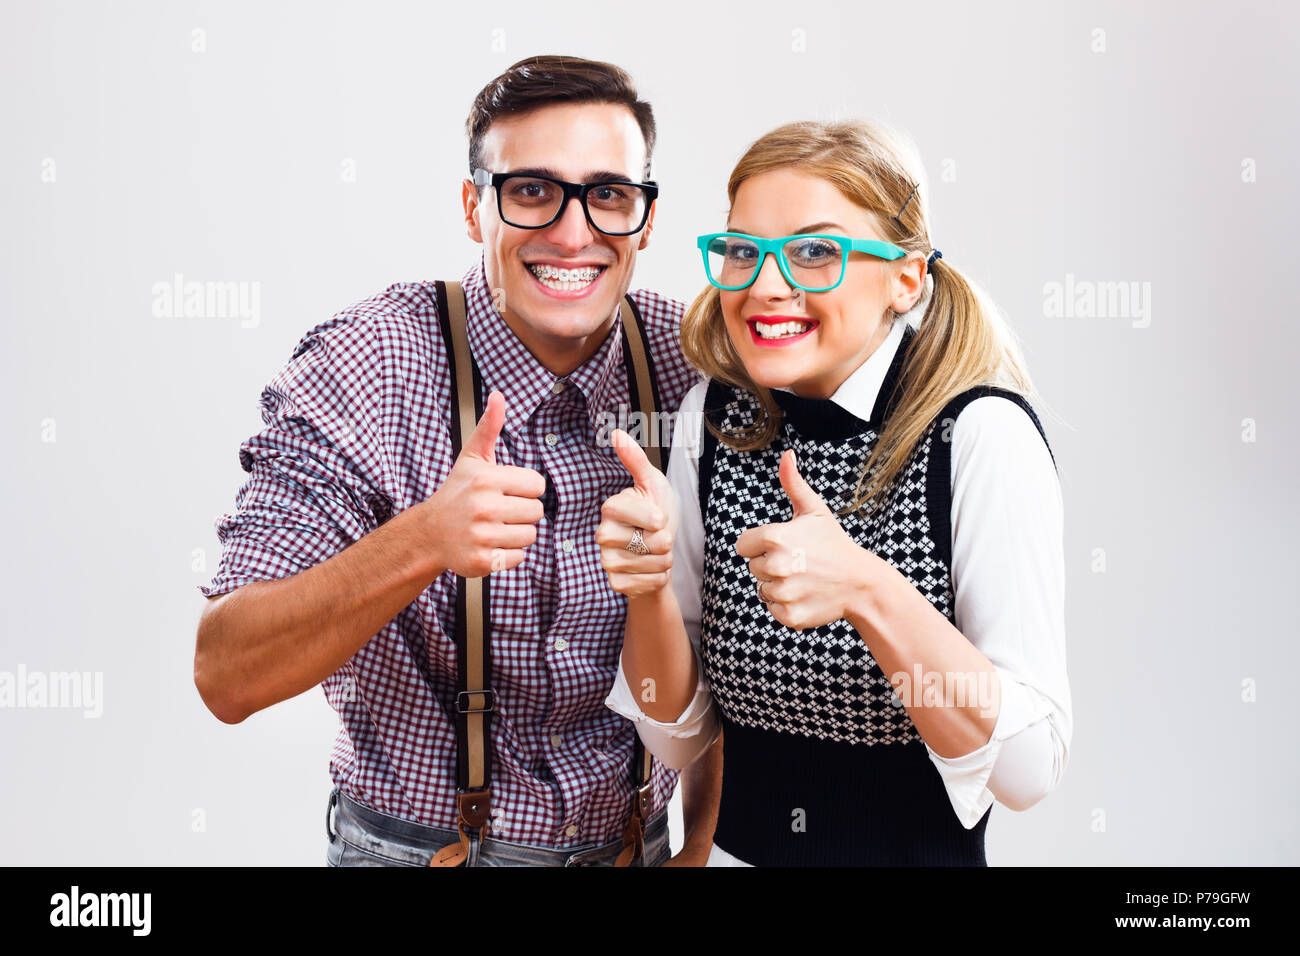 Happy nerdy couple showing thumbs up - Stock Image